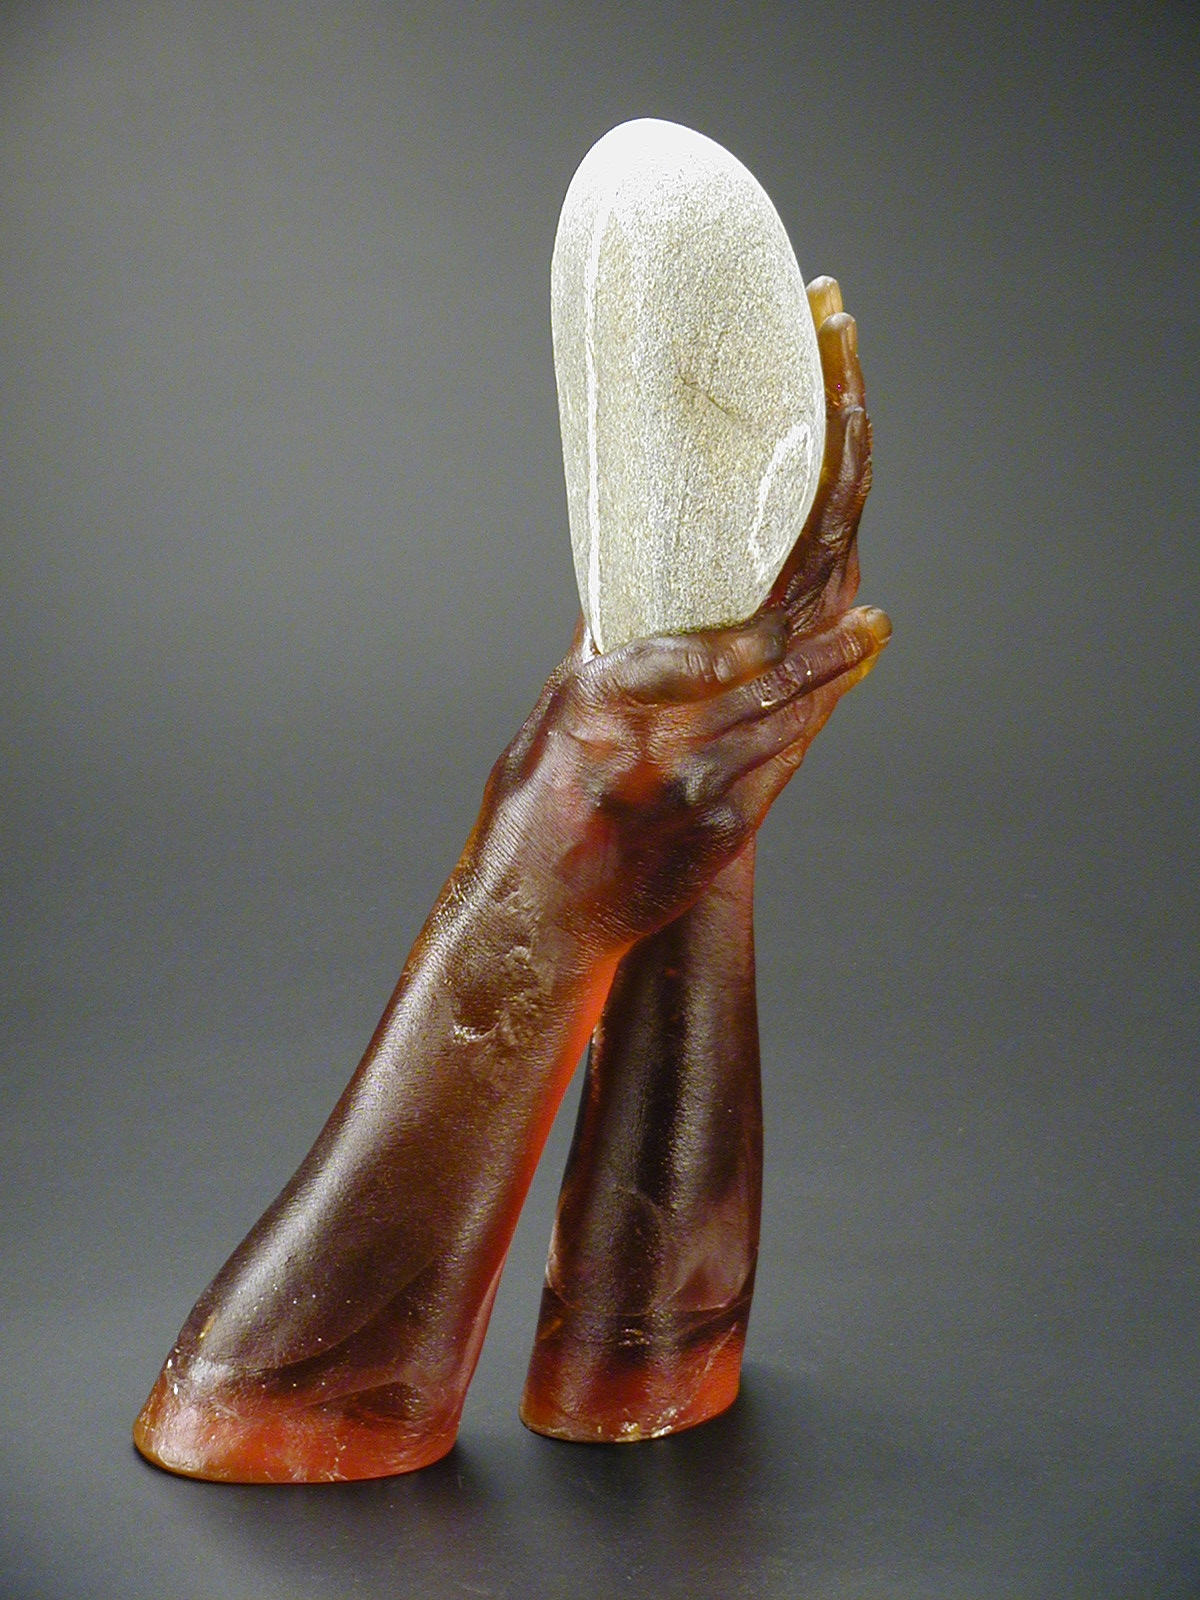 Side view of sculpture of cast glass hands holding grey stripped rock.